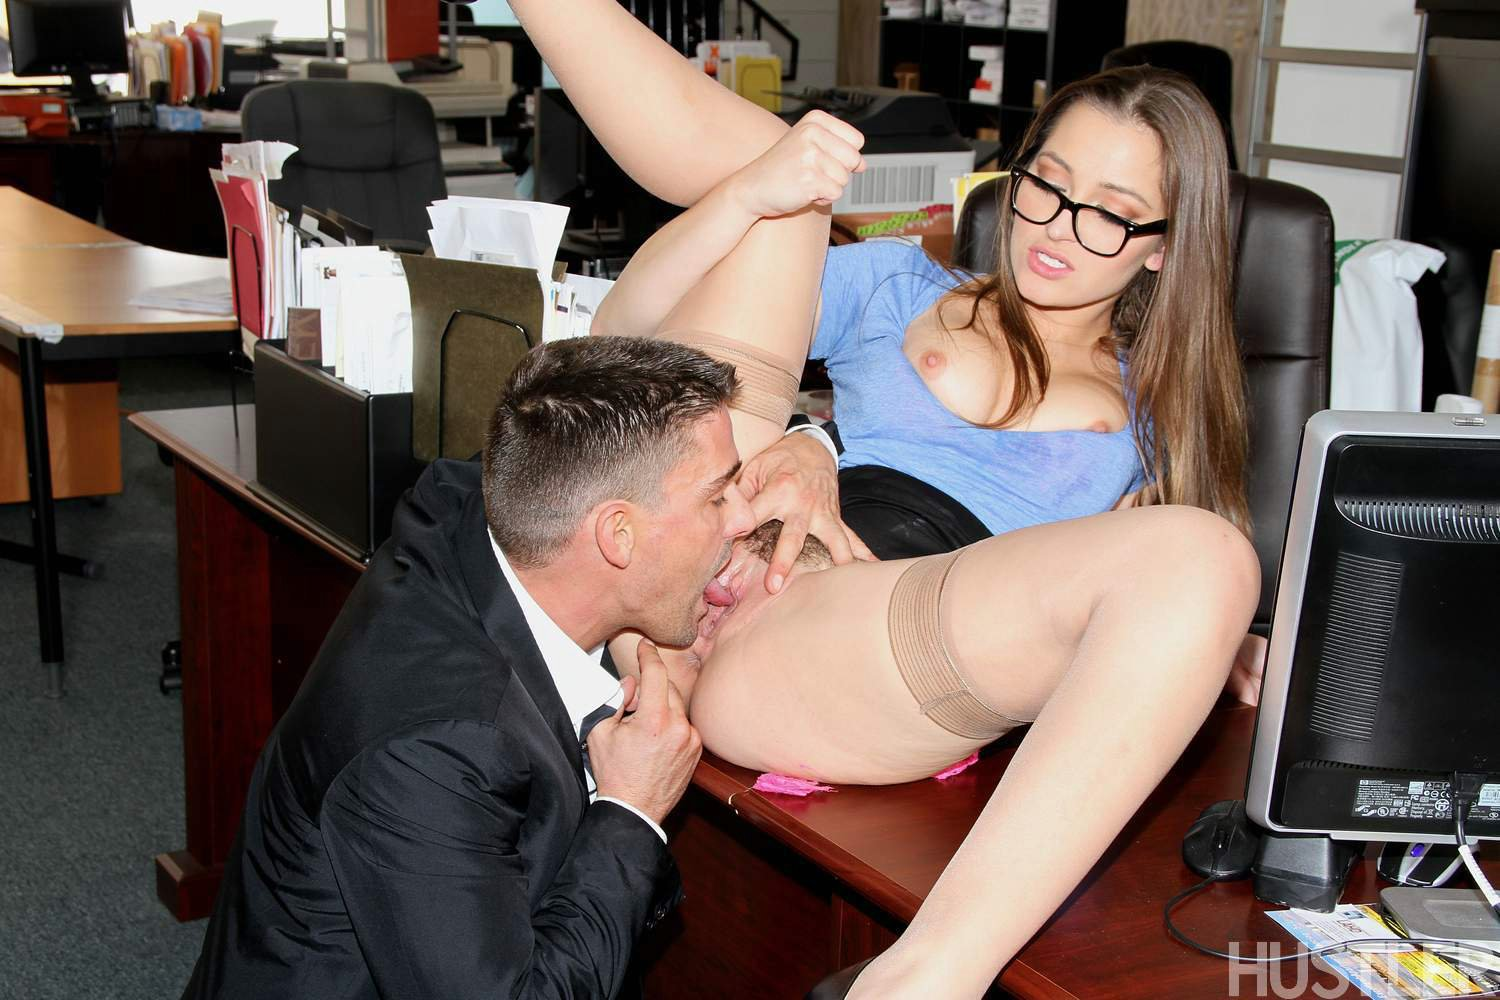 Hot secretary gets fucked